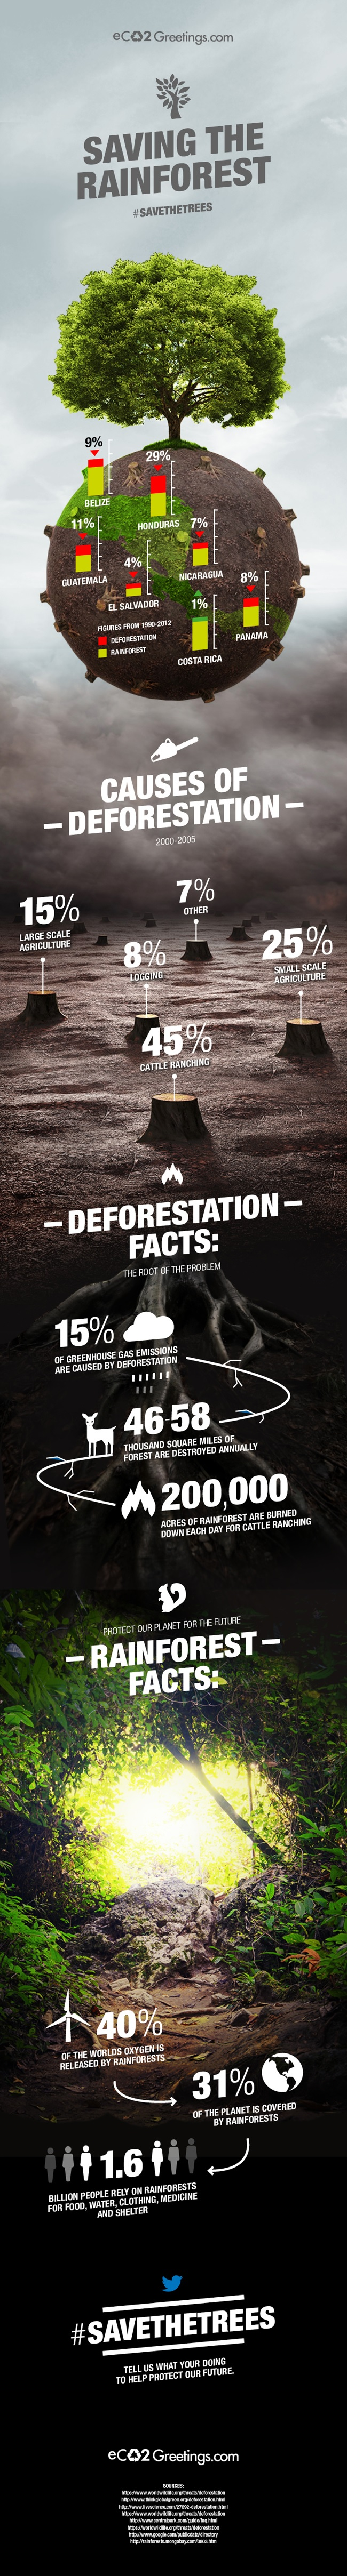 alarming facts about deforestation infographic